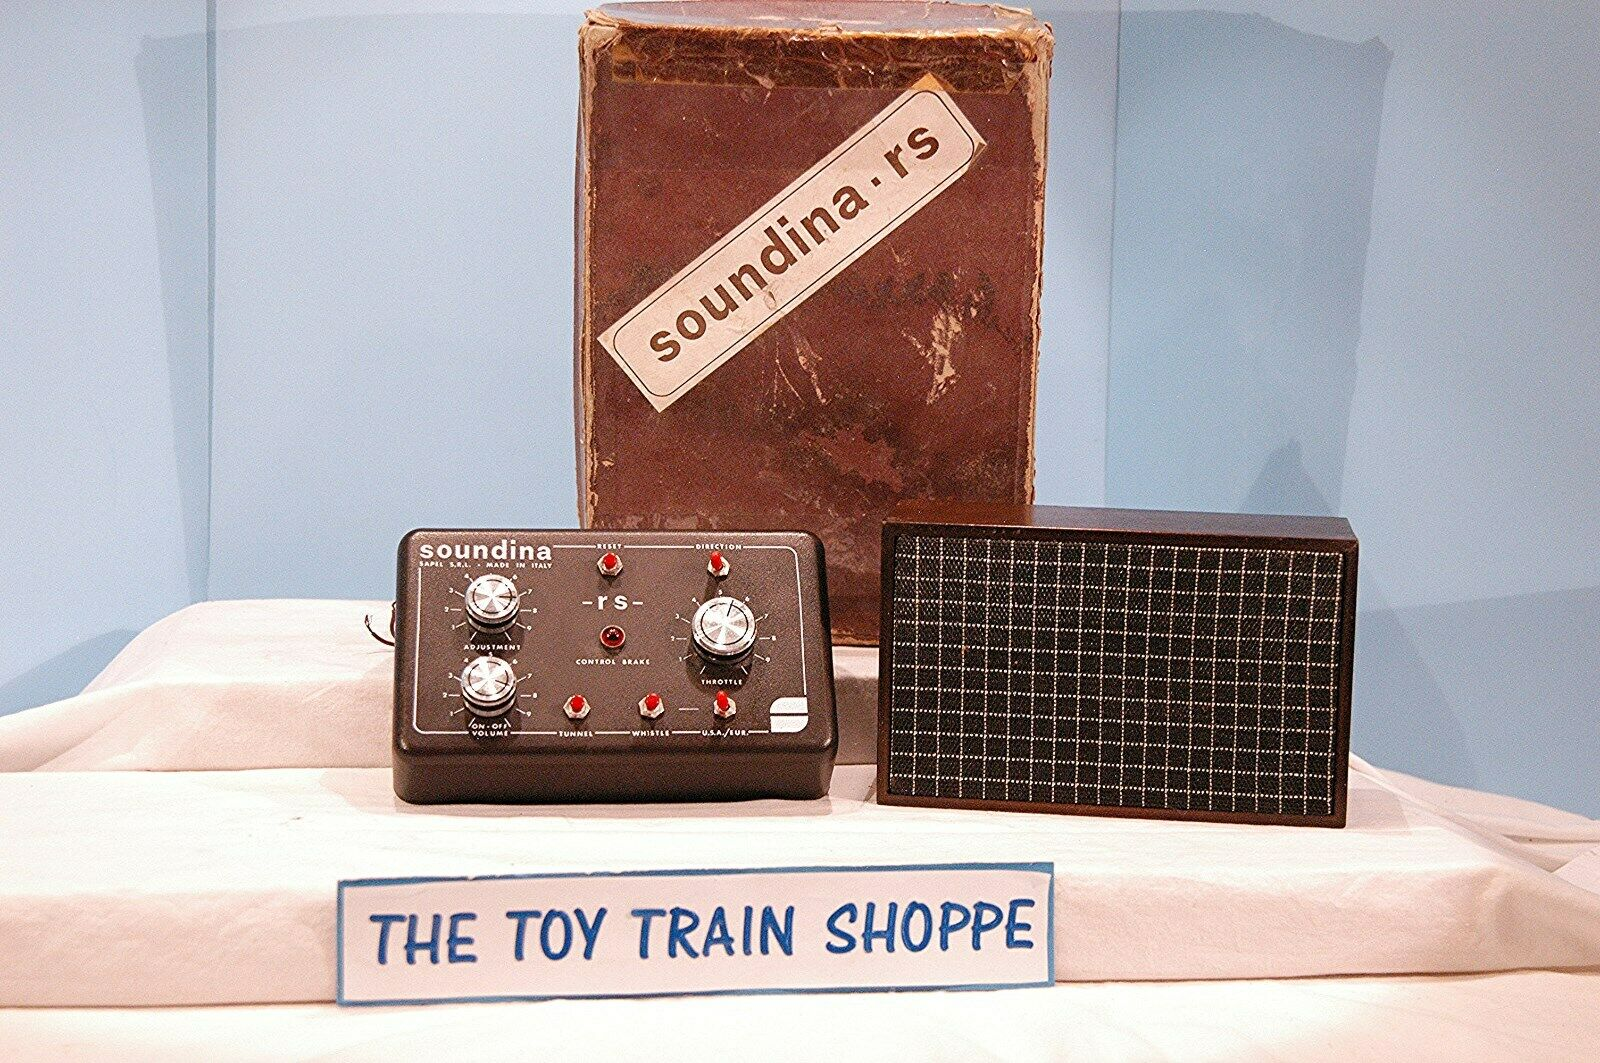 SOUNDINA SAPEL S.R.L. MODEL TRAIN CONTROLLER. MADE IN ITALY.  NICE IN BOX.